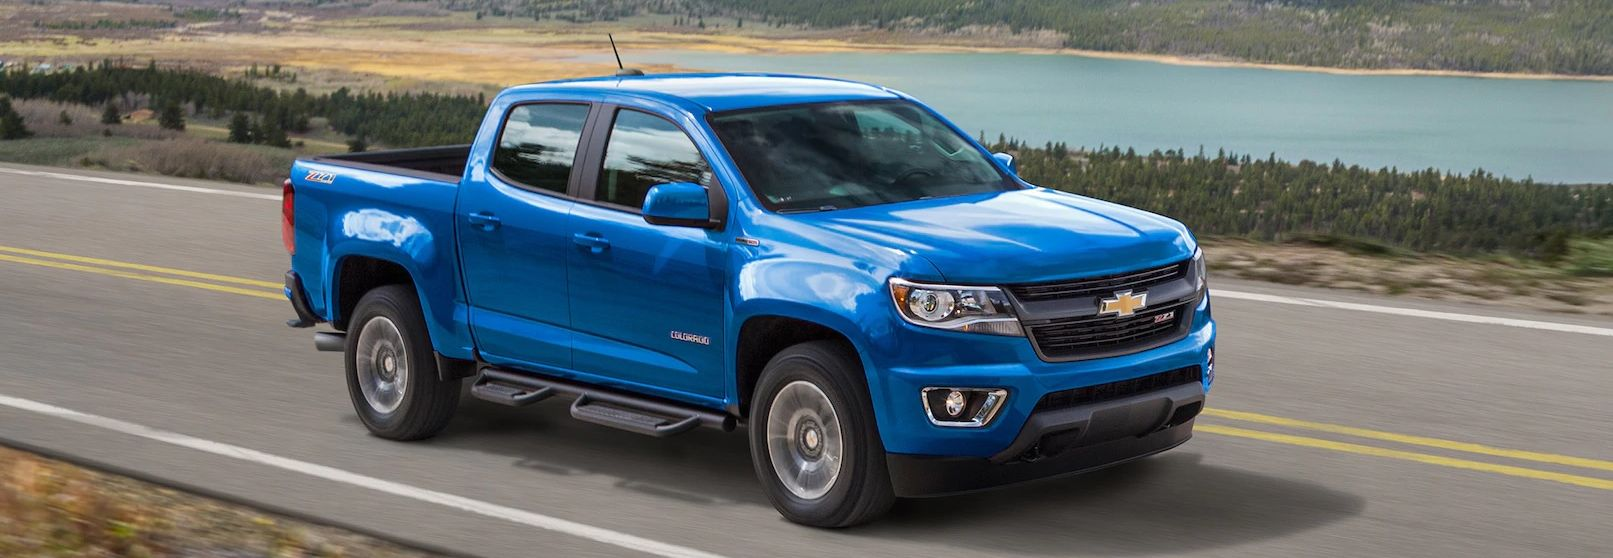 2019 Chevrolet Colorado for Sale near Ann Arbor, MI